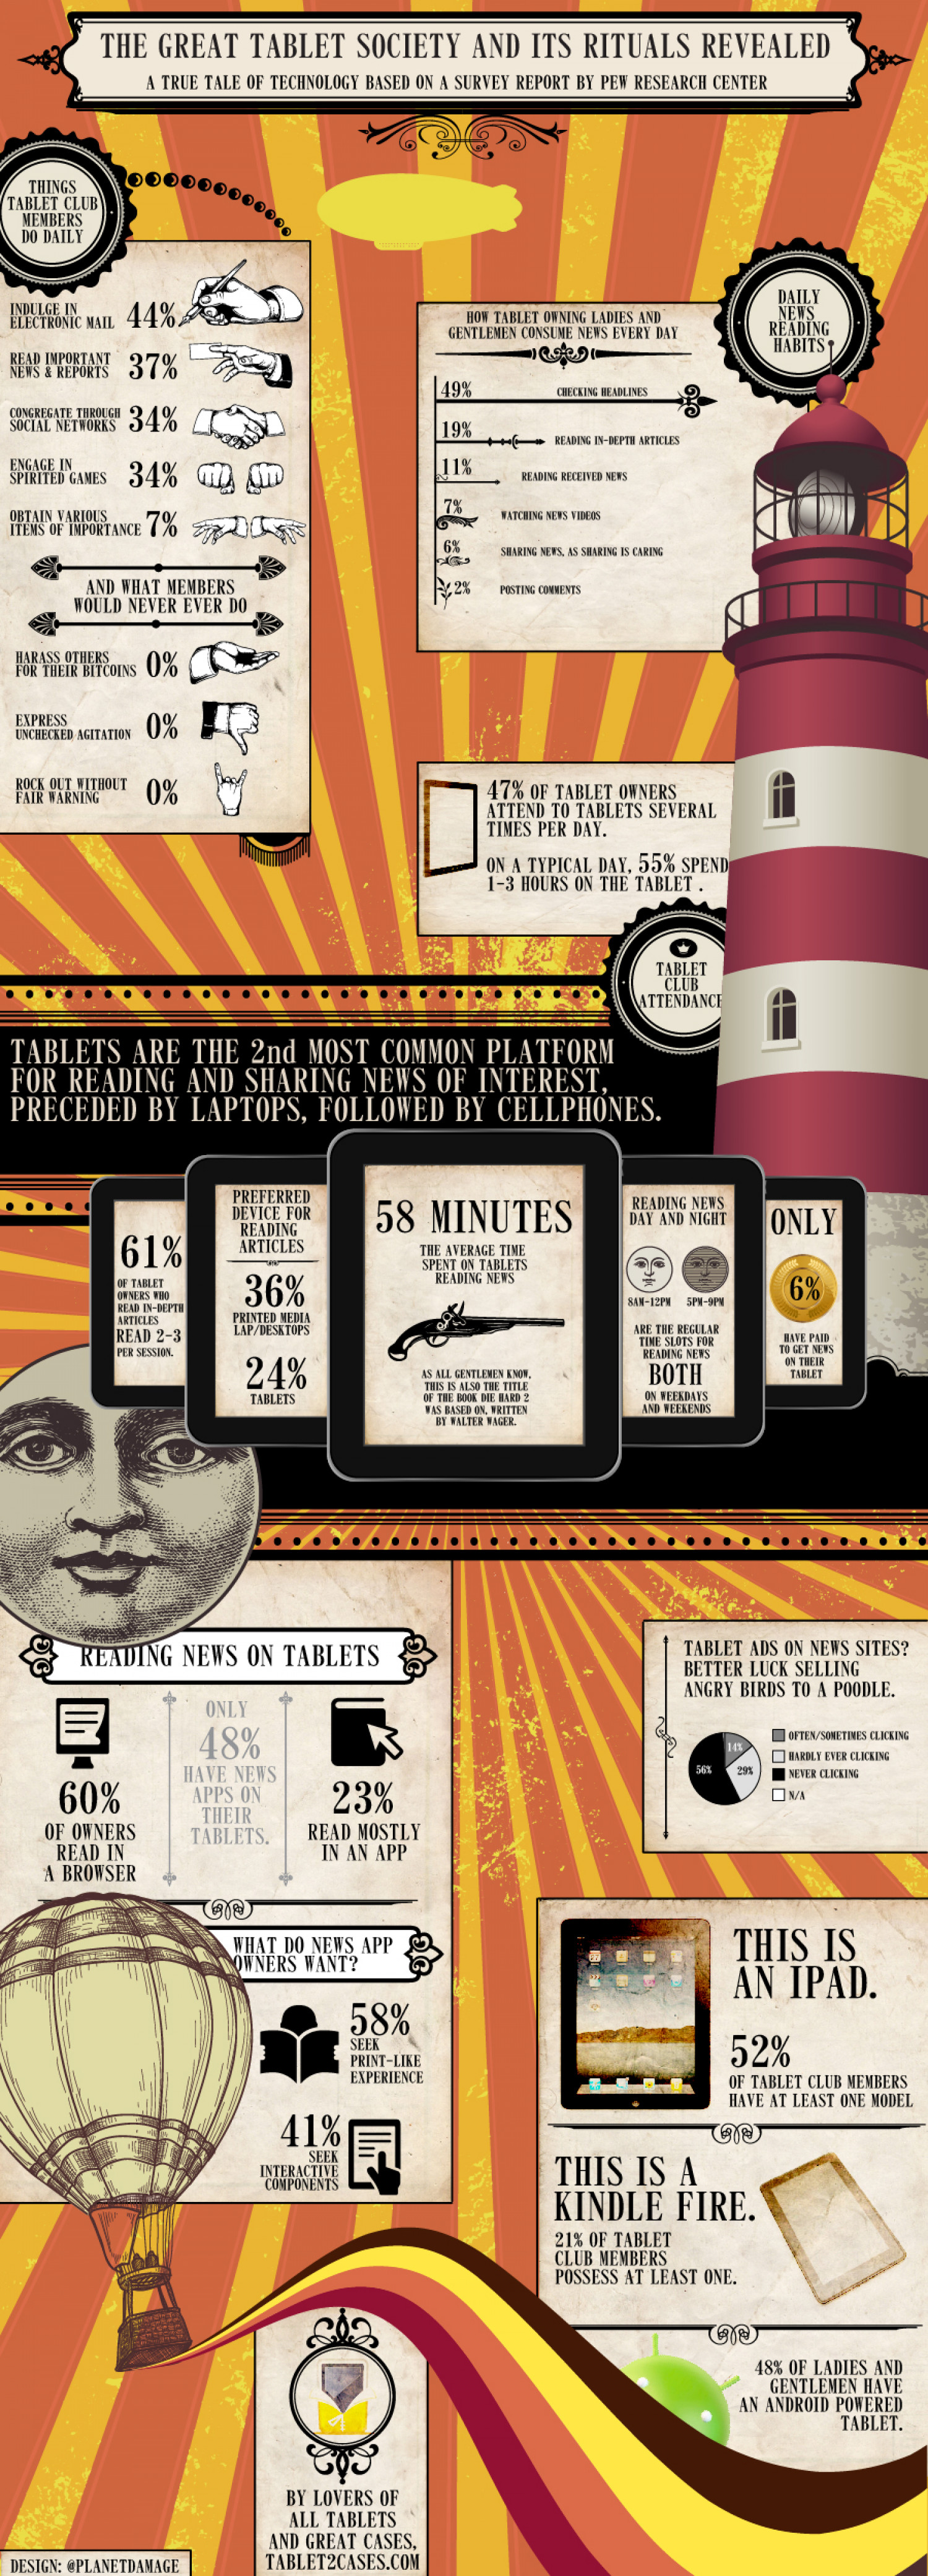 The Great Tablet Society and Its Rituals Revealed Infographic